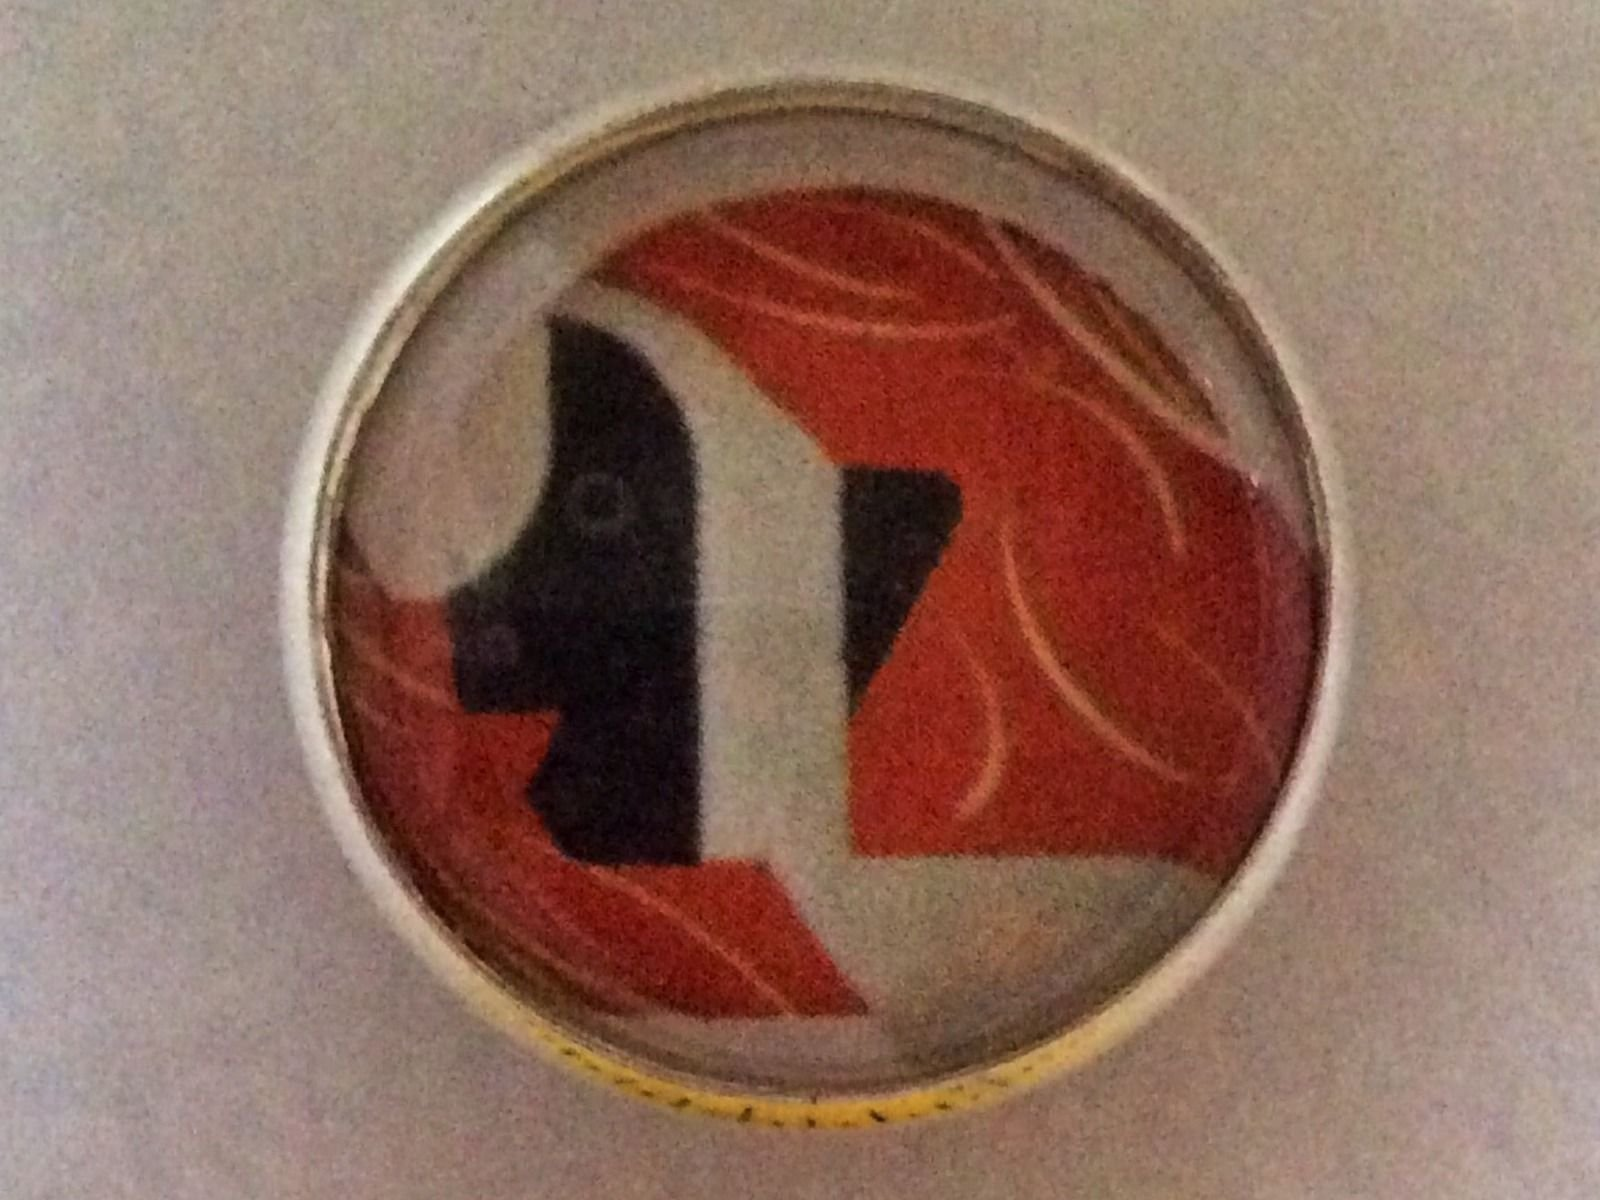 Charley Harper Sloth Rainforest Sewing Button 1 Mid Century Mod Charles HA54